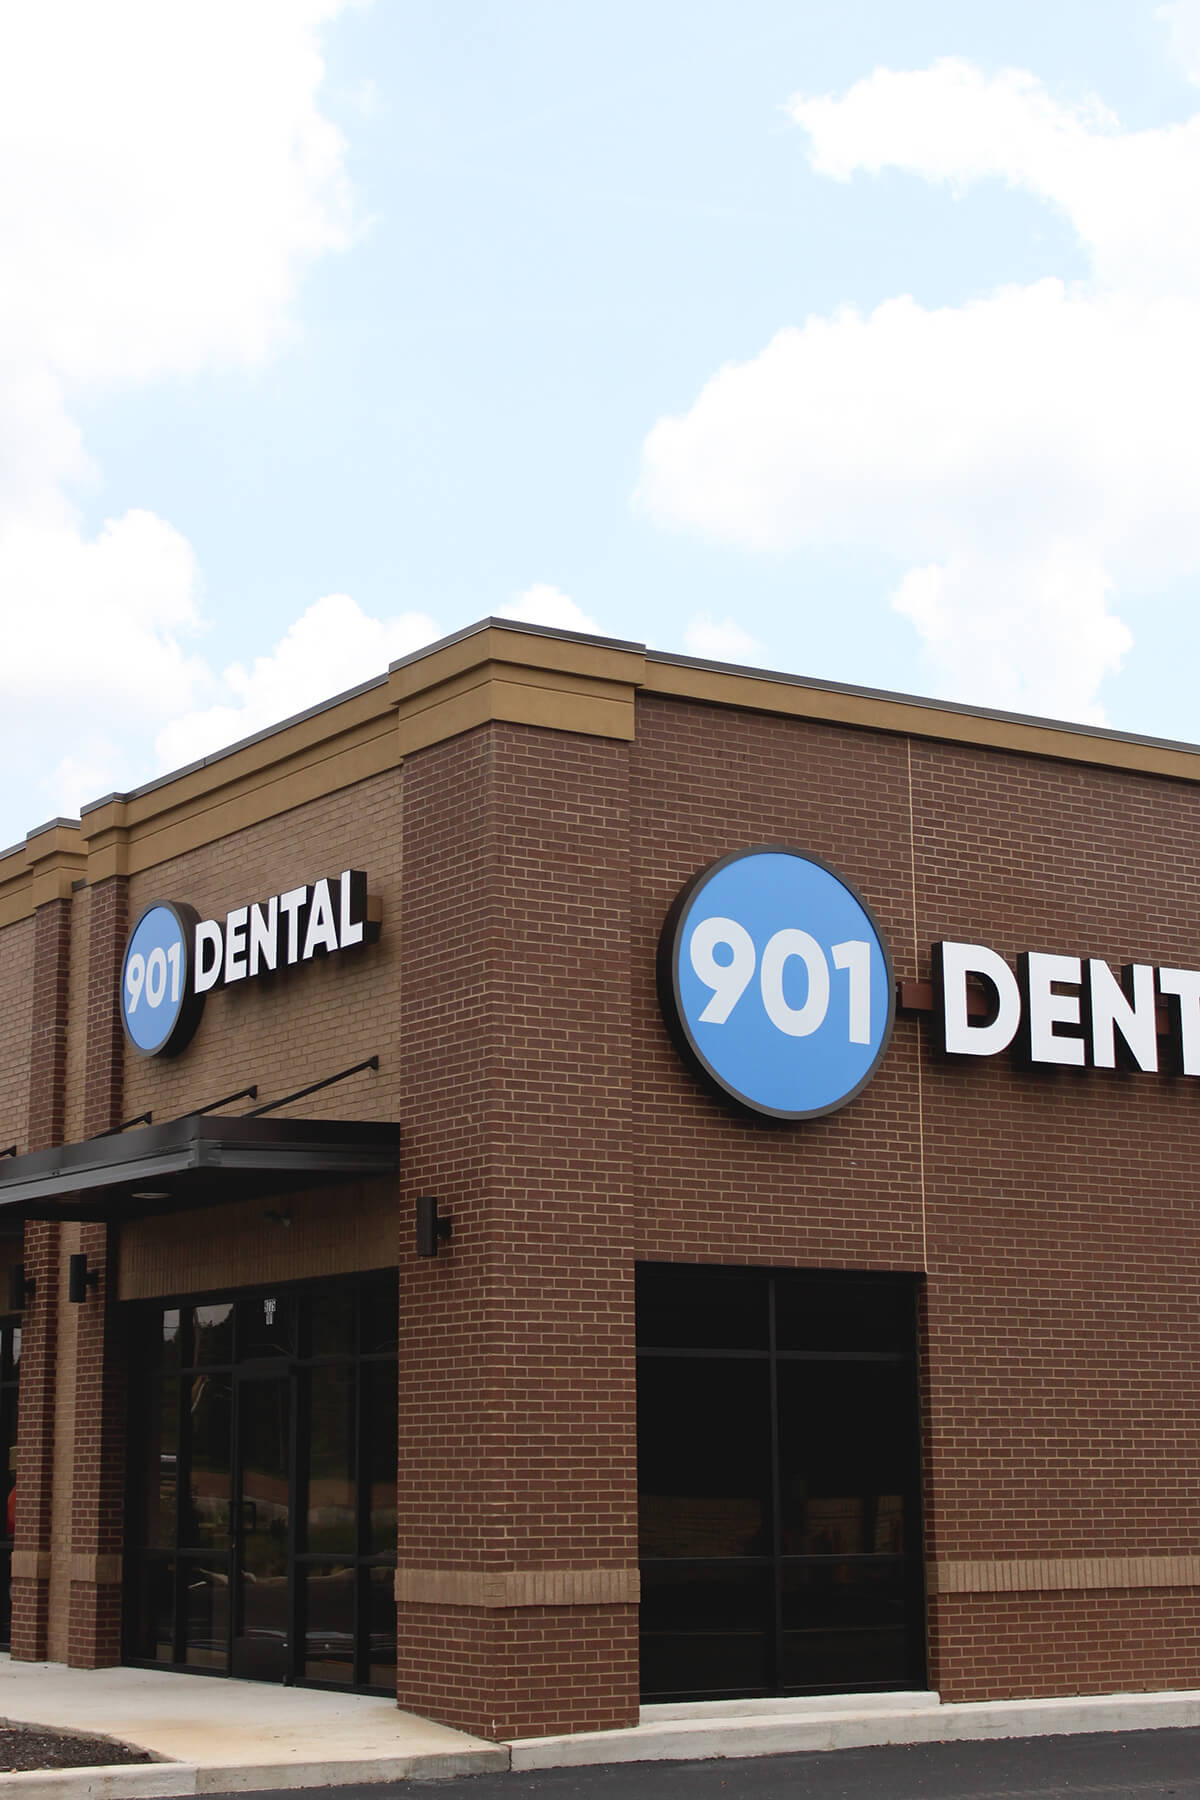 901Dental image